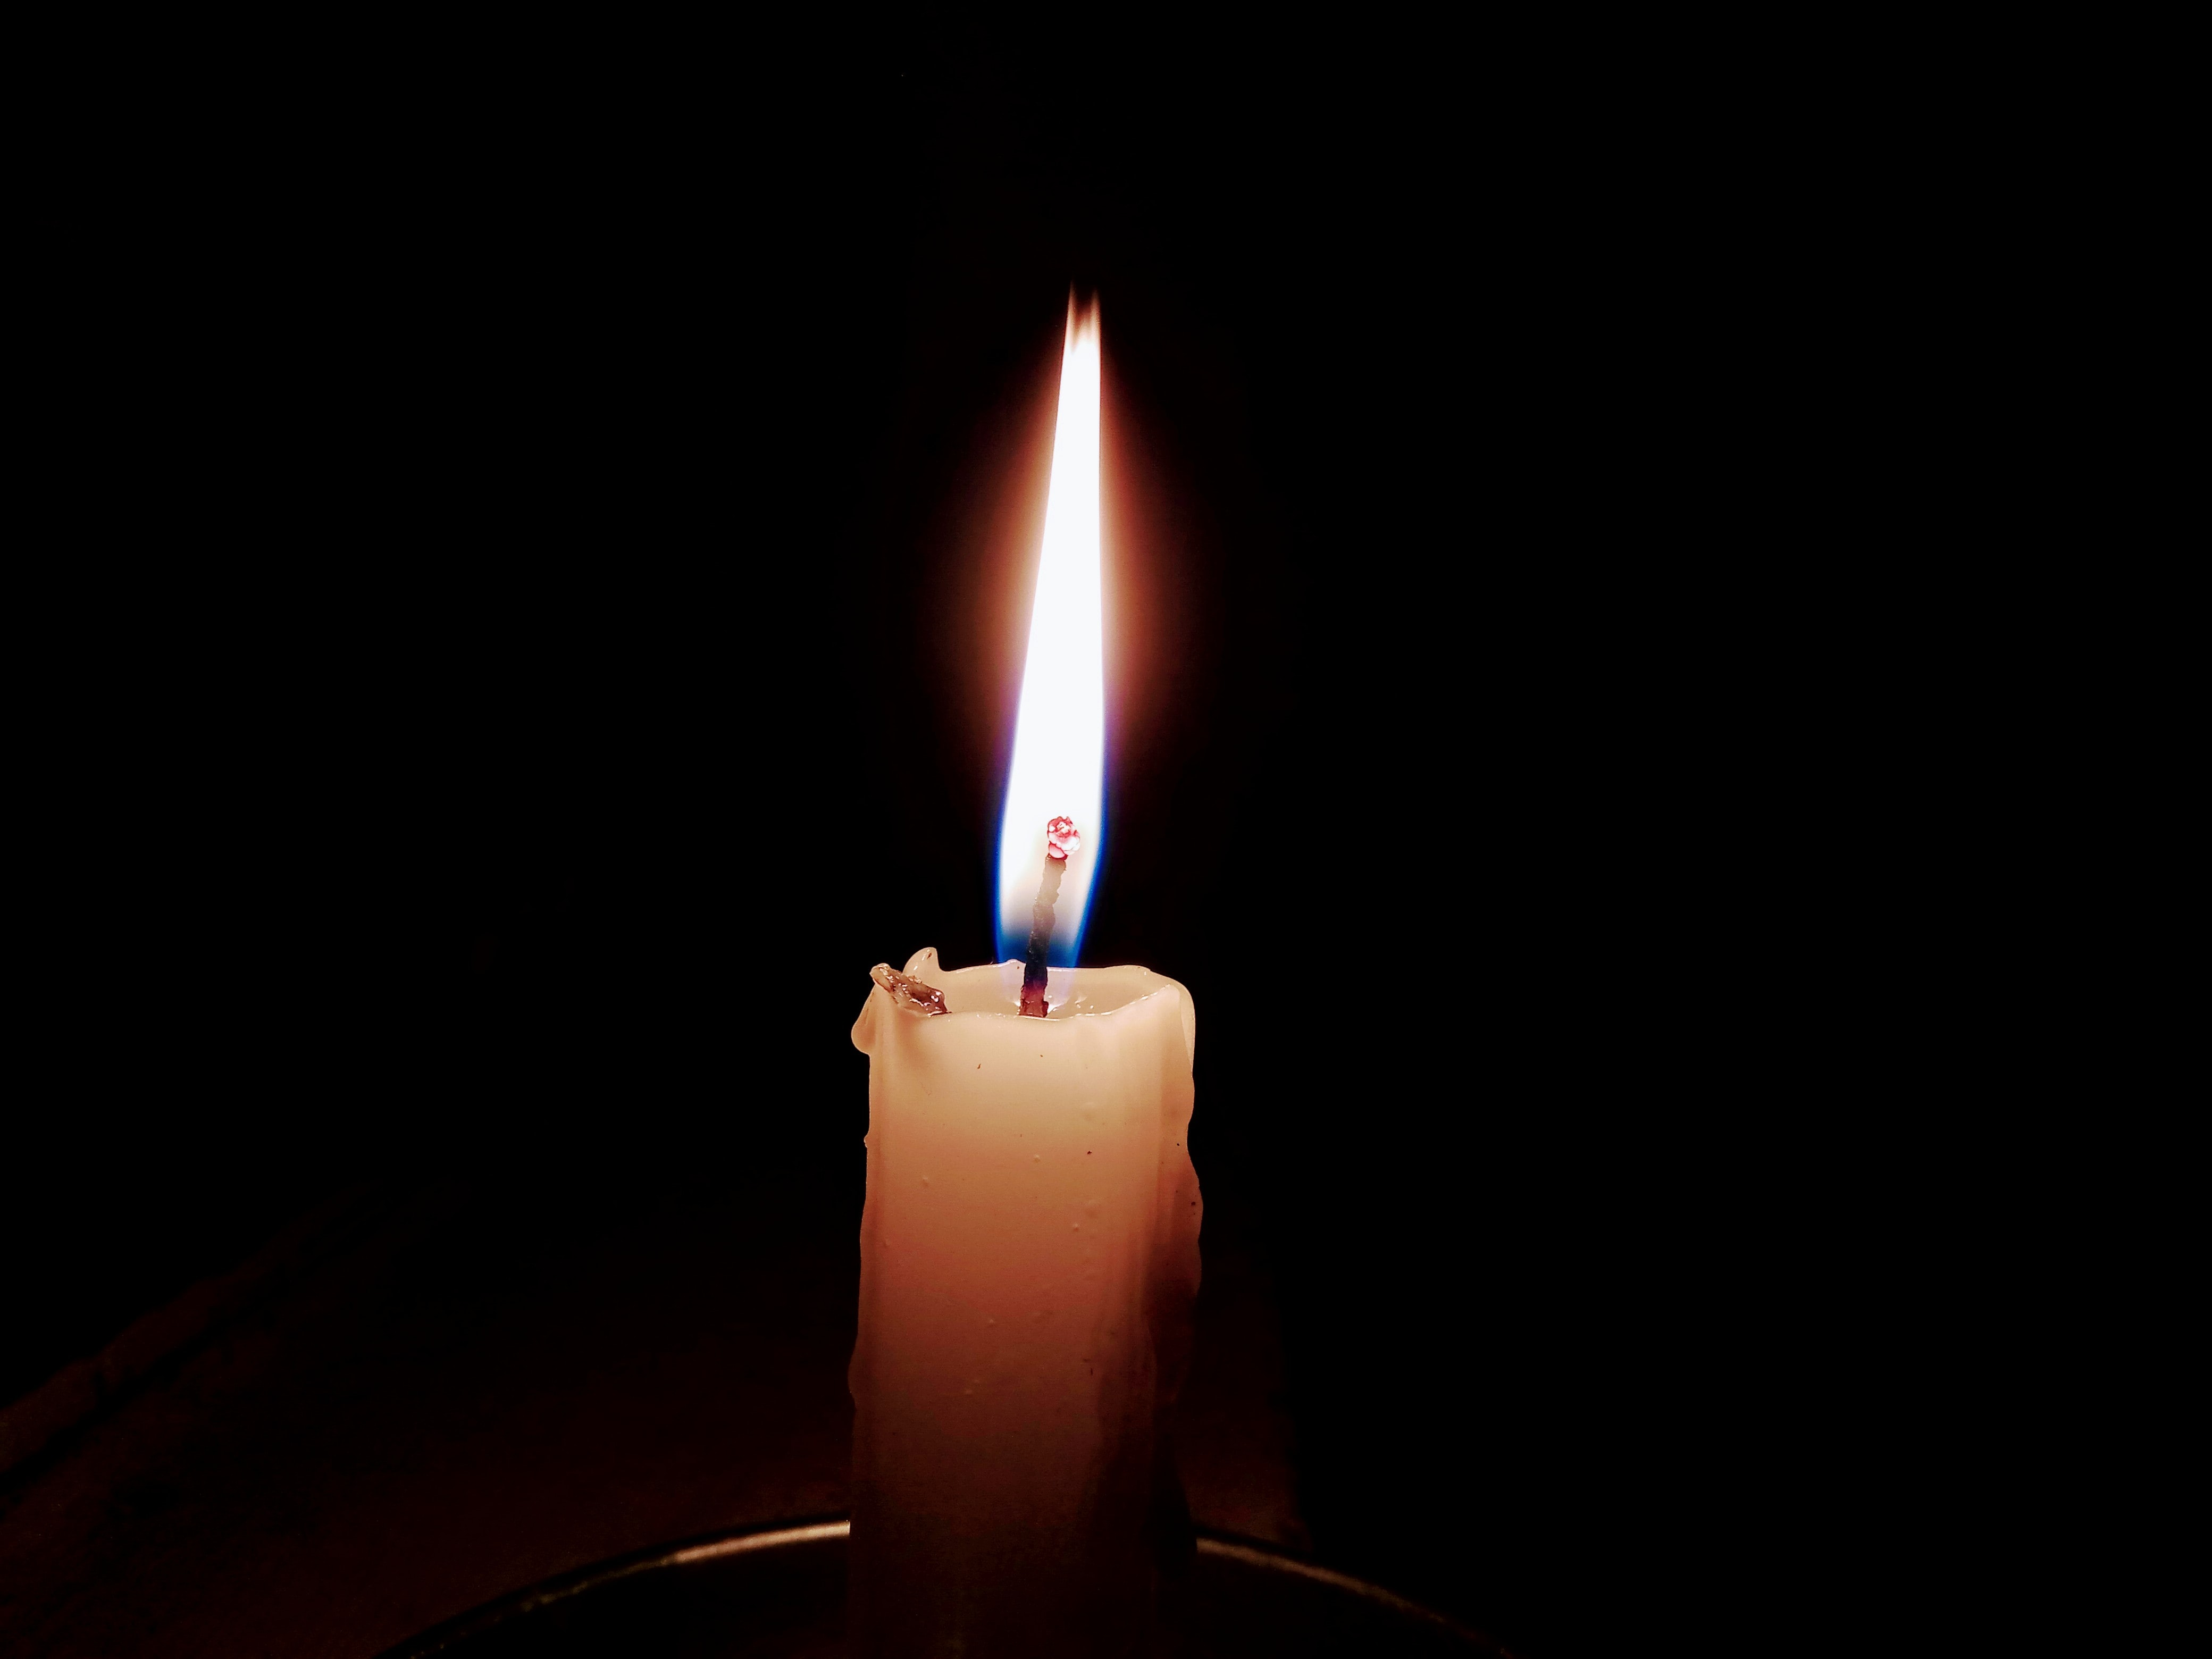 lit candle in focus photography